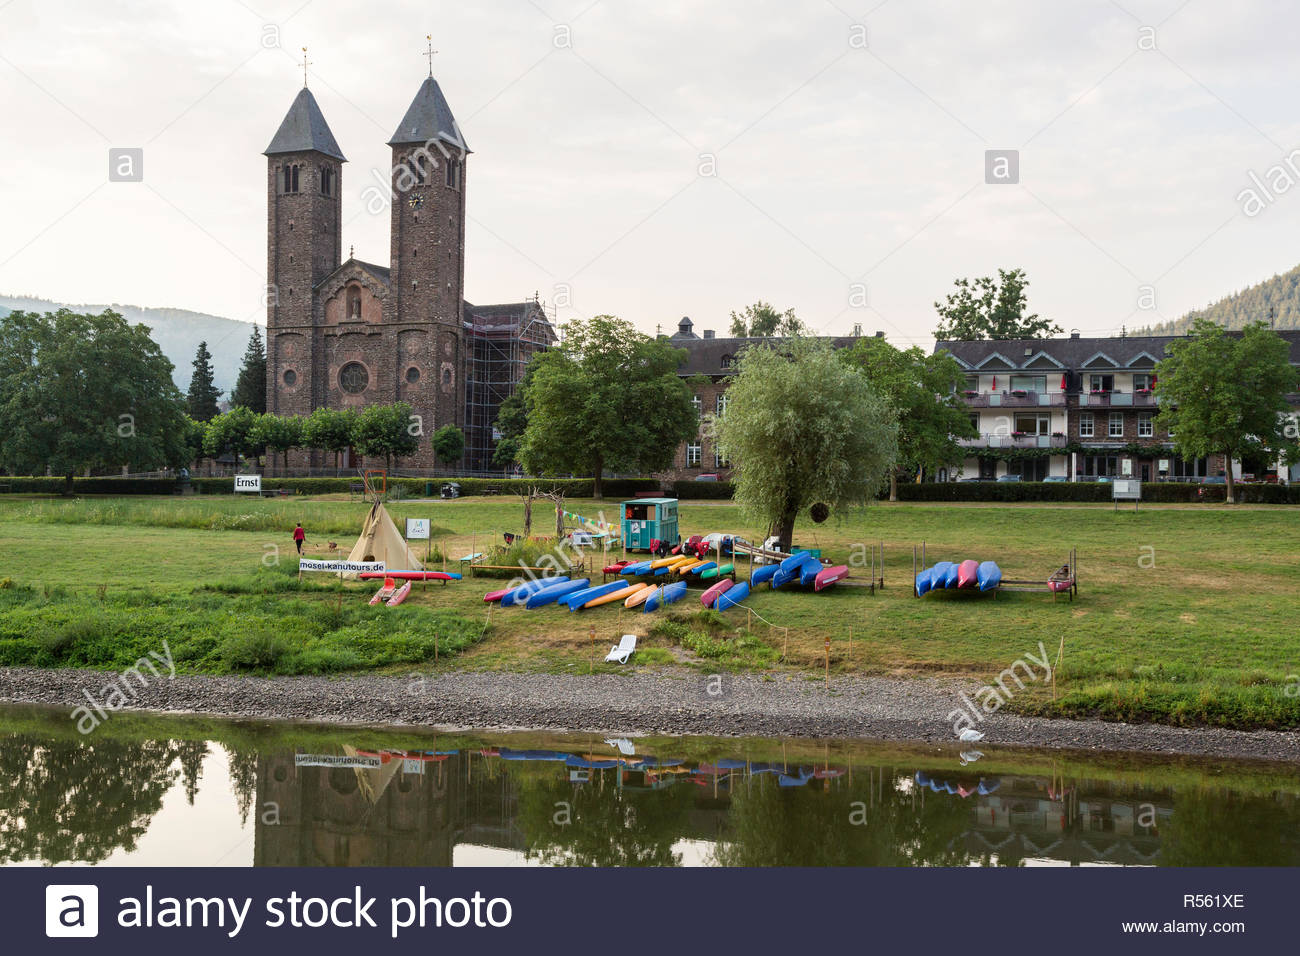 Ernst Germany Saint Salvador Church in Background canoe Rentals 1300x956